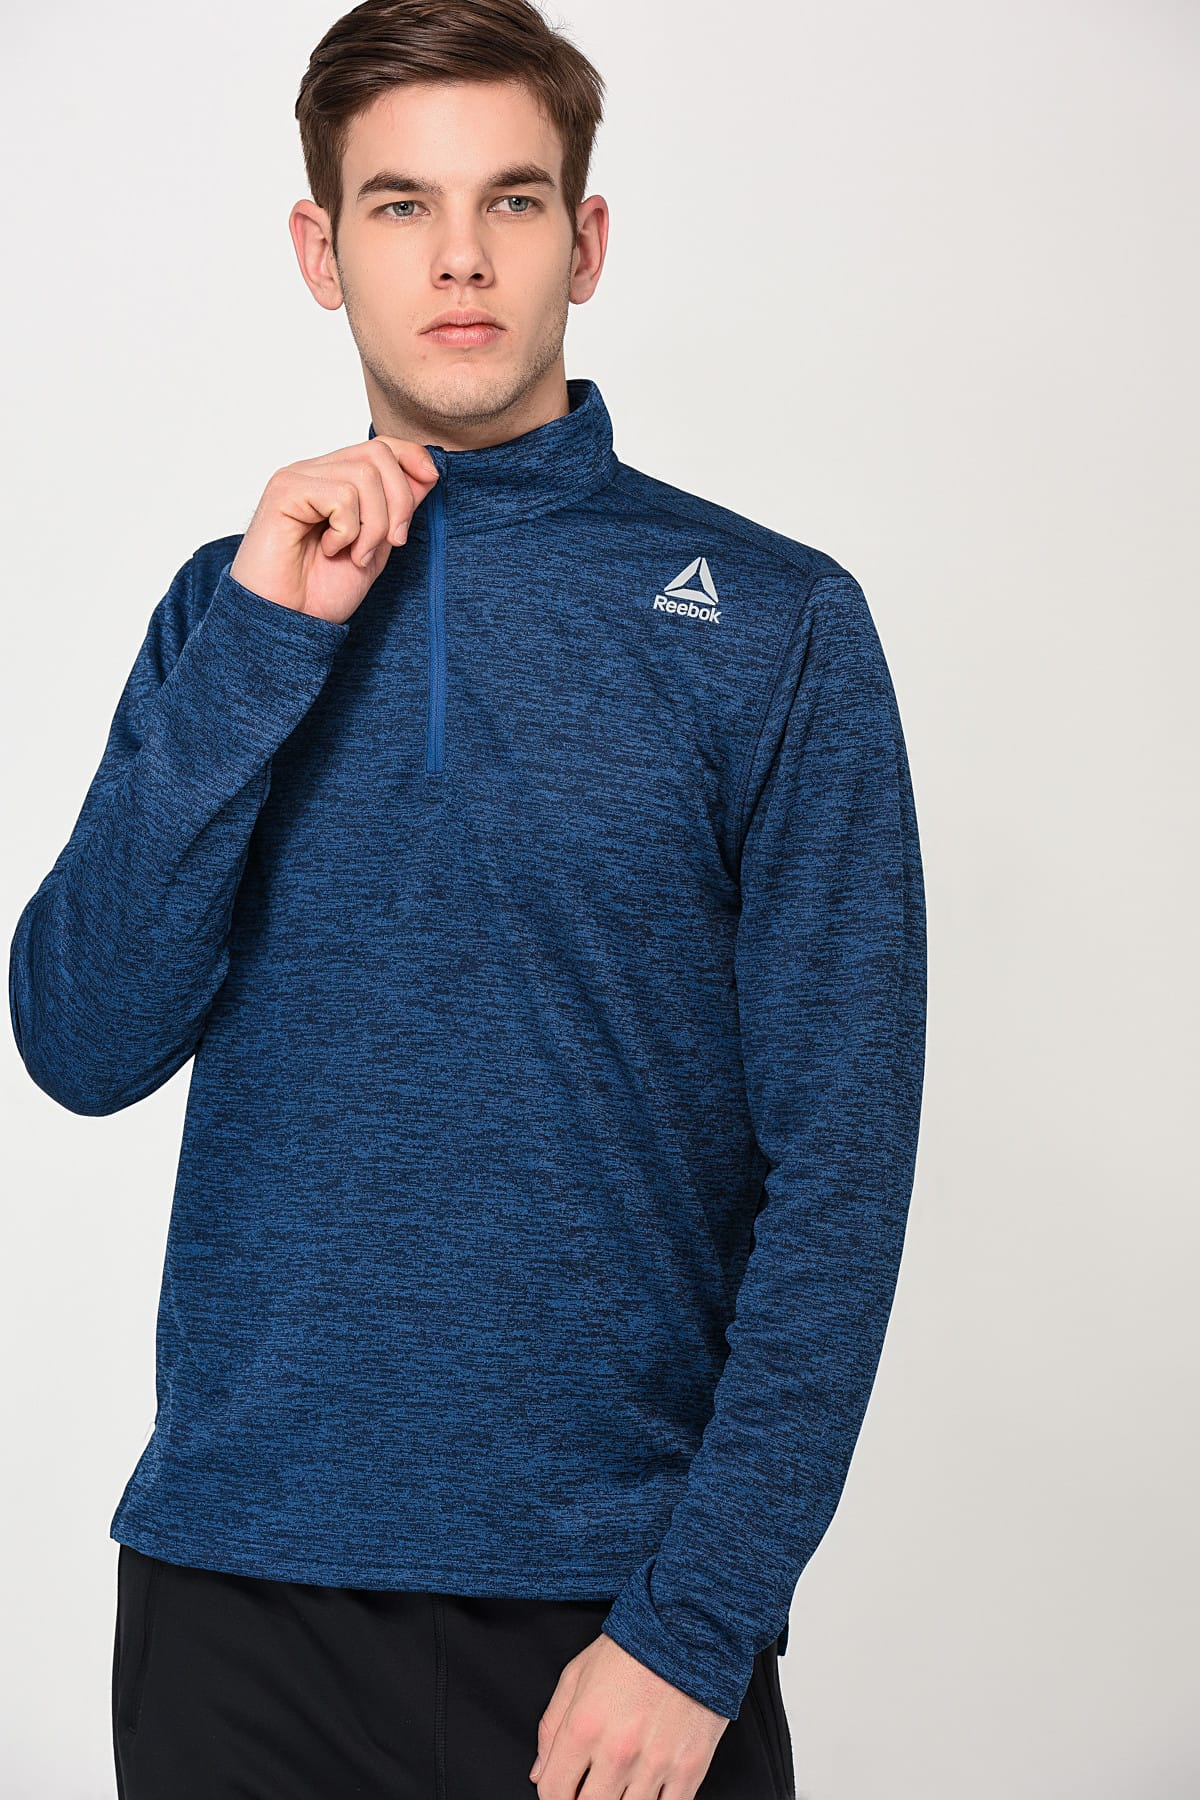 Reebok Erkek Sweatshirt   Us Double Knit 1 4